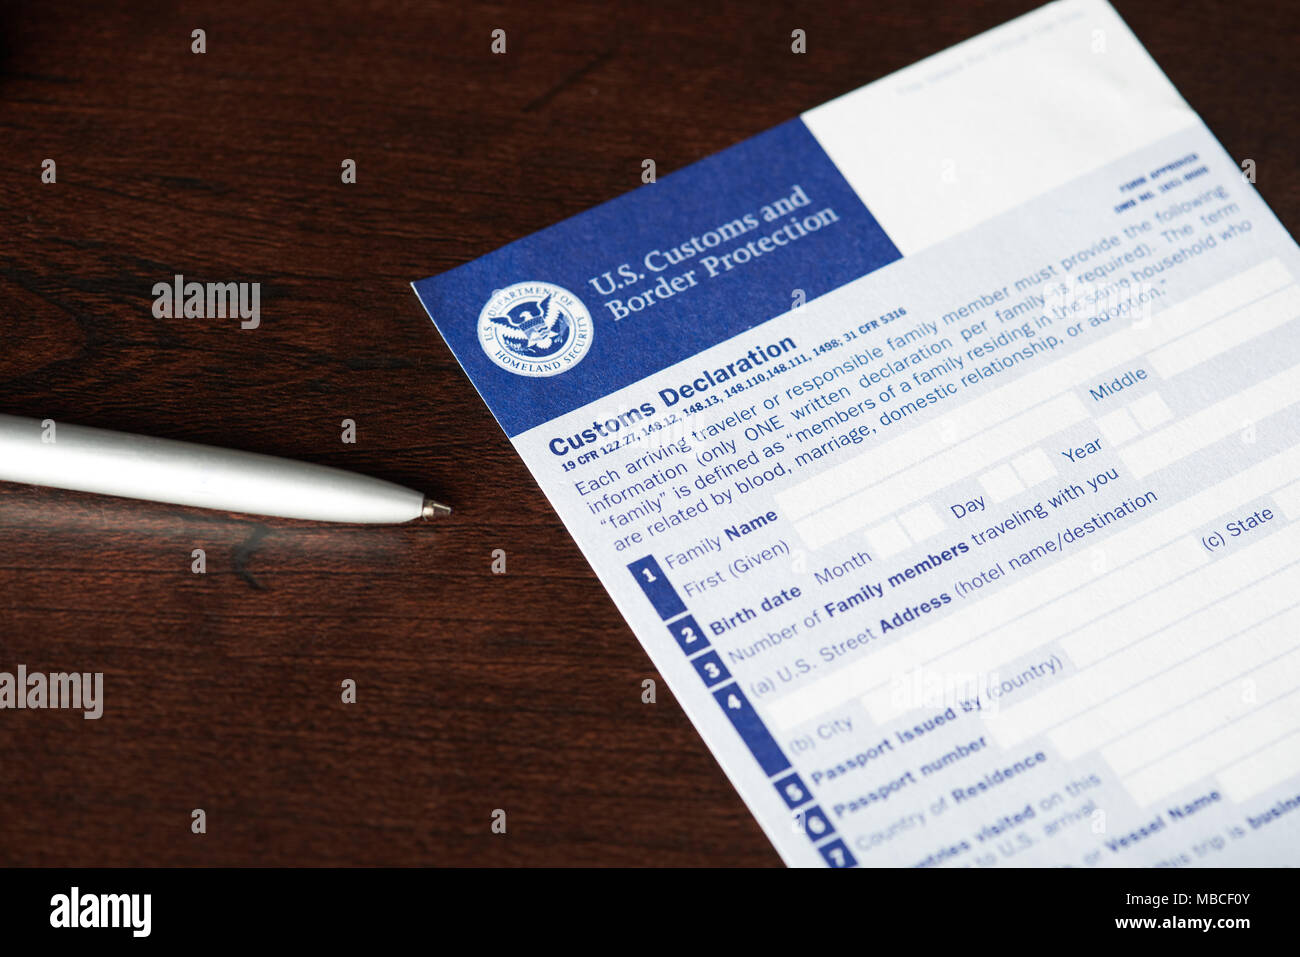 New york usa april 9 2018 empty us customs declaration form new york usa april 9 2018 empty us customs declaration form laying with pen on wooden table thecheapjerseys Image collections